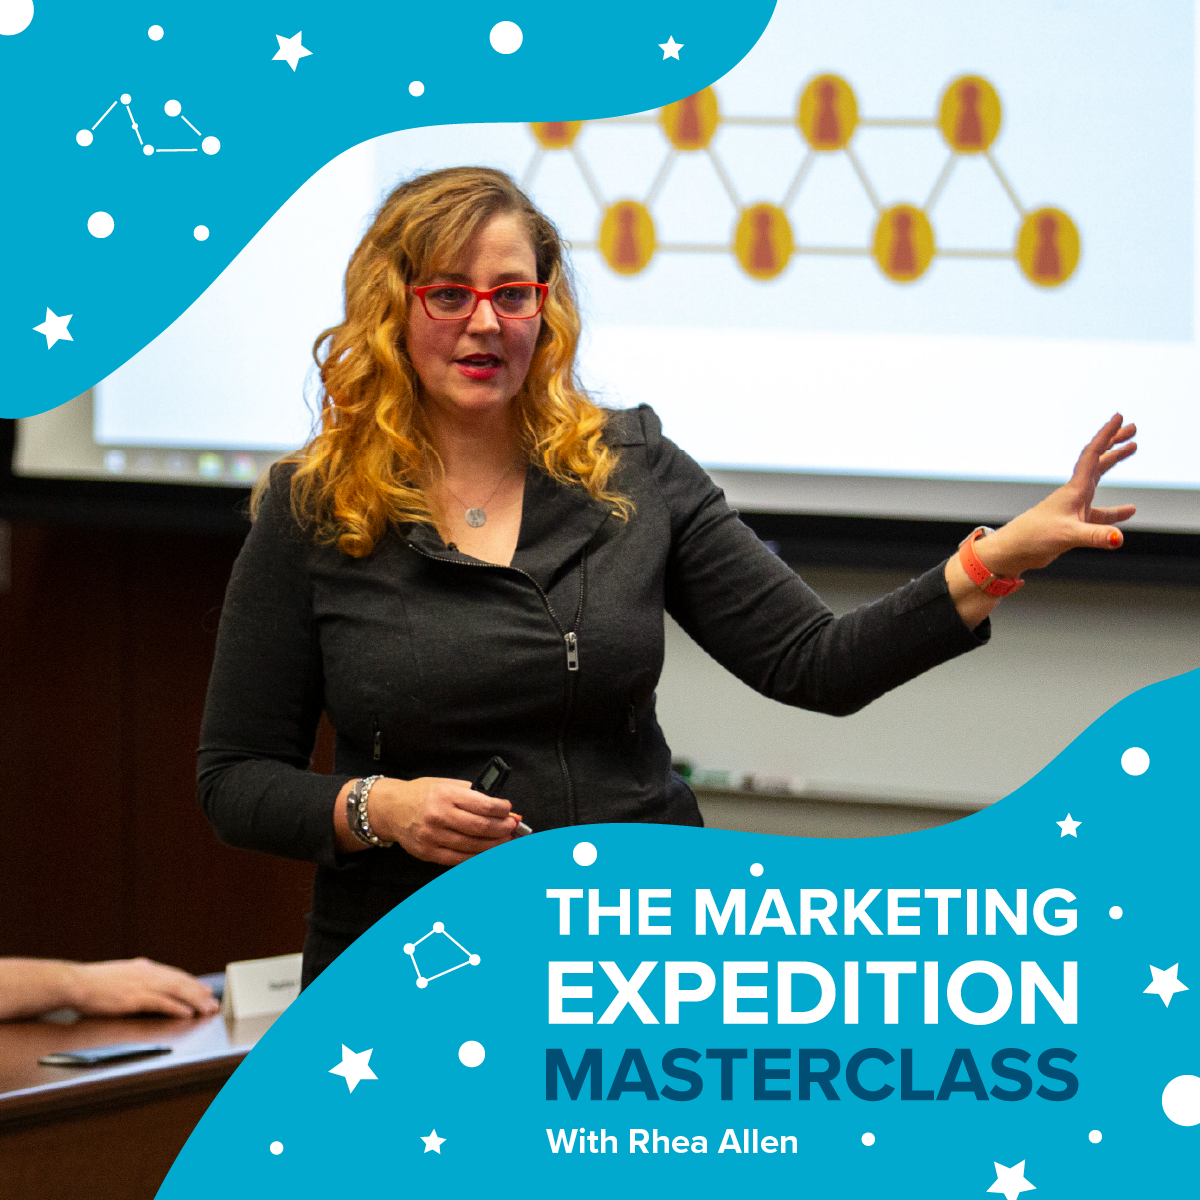 Rhea Allen The Marketing Expedition Masterclass Image Graphic